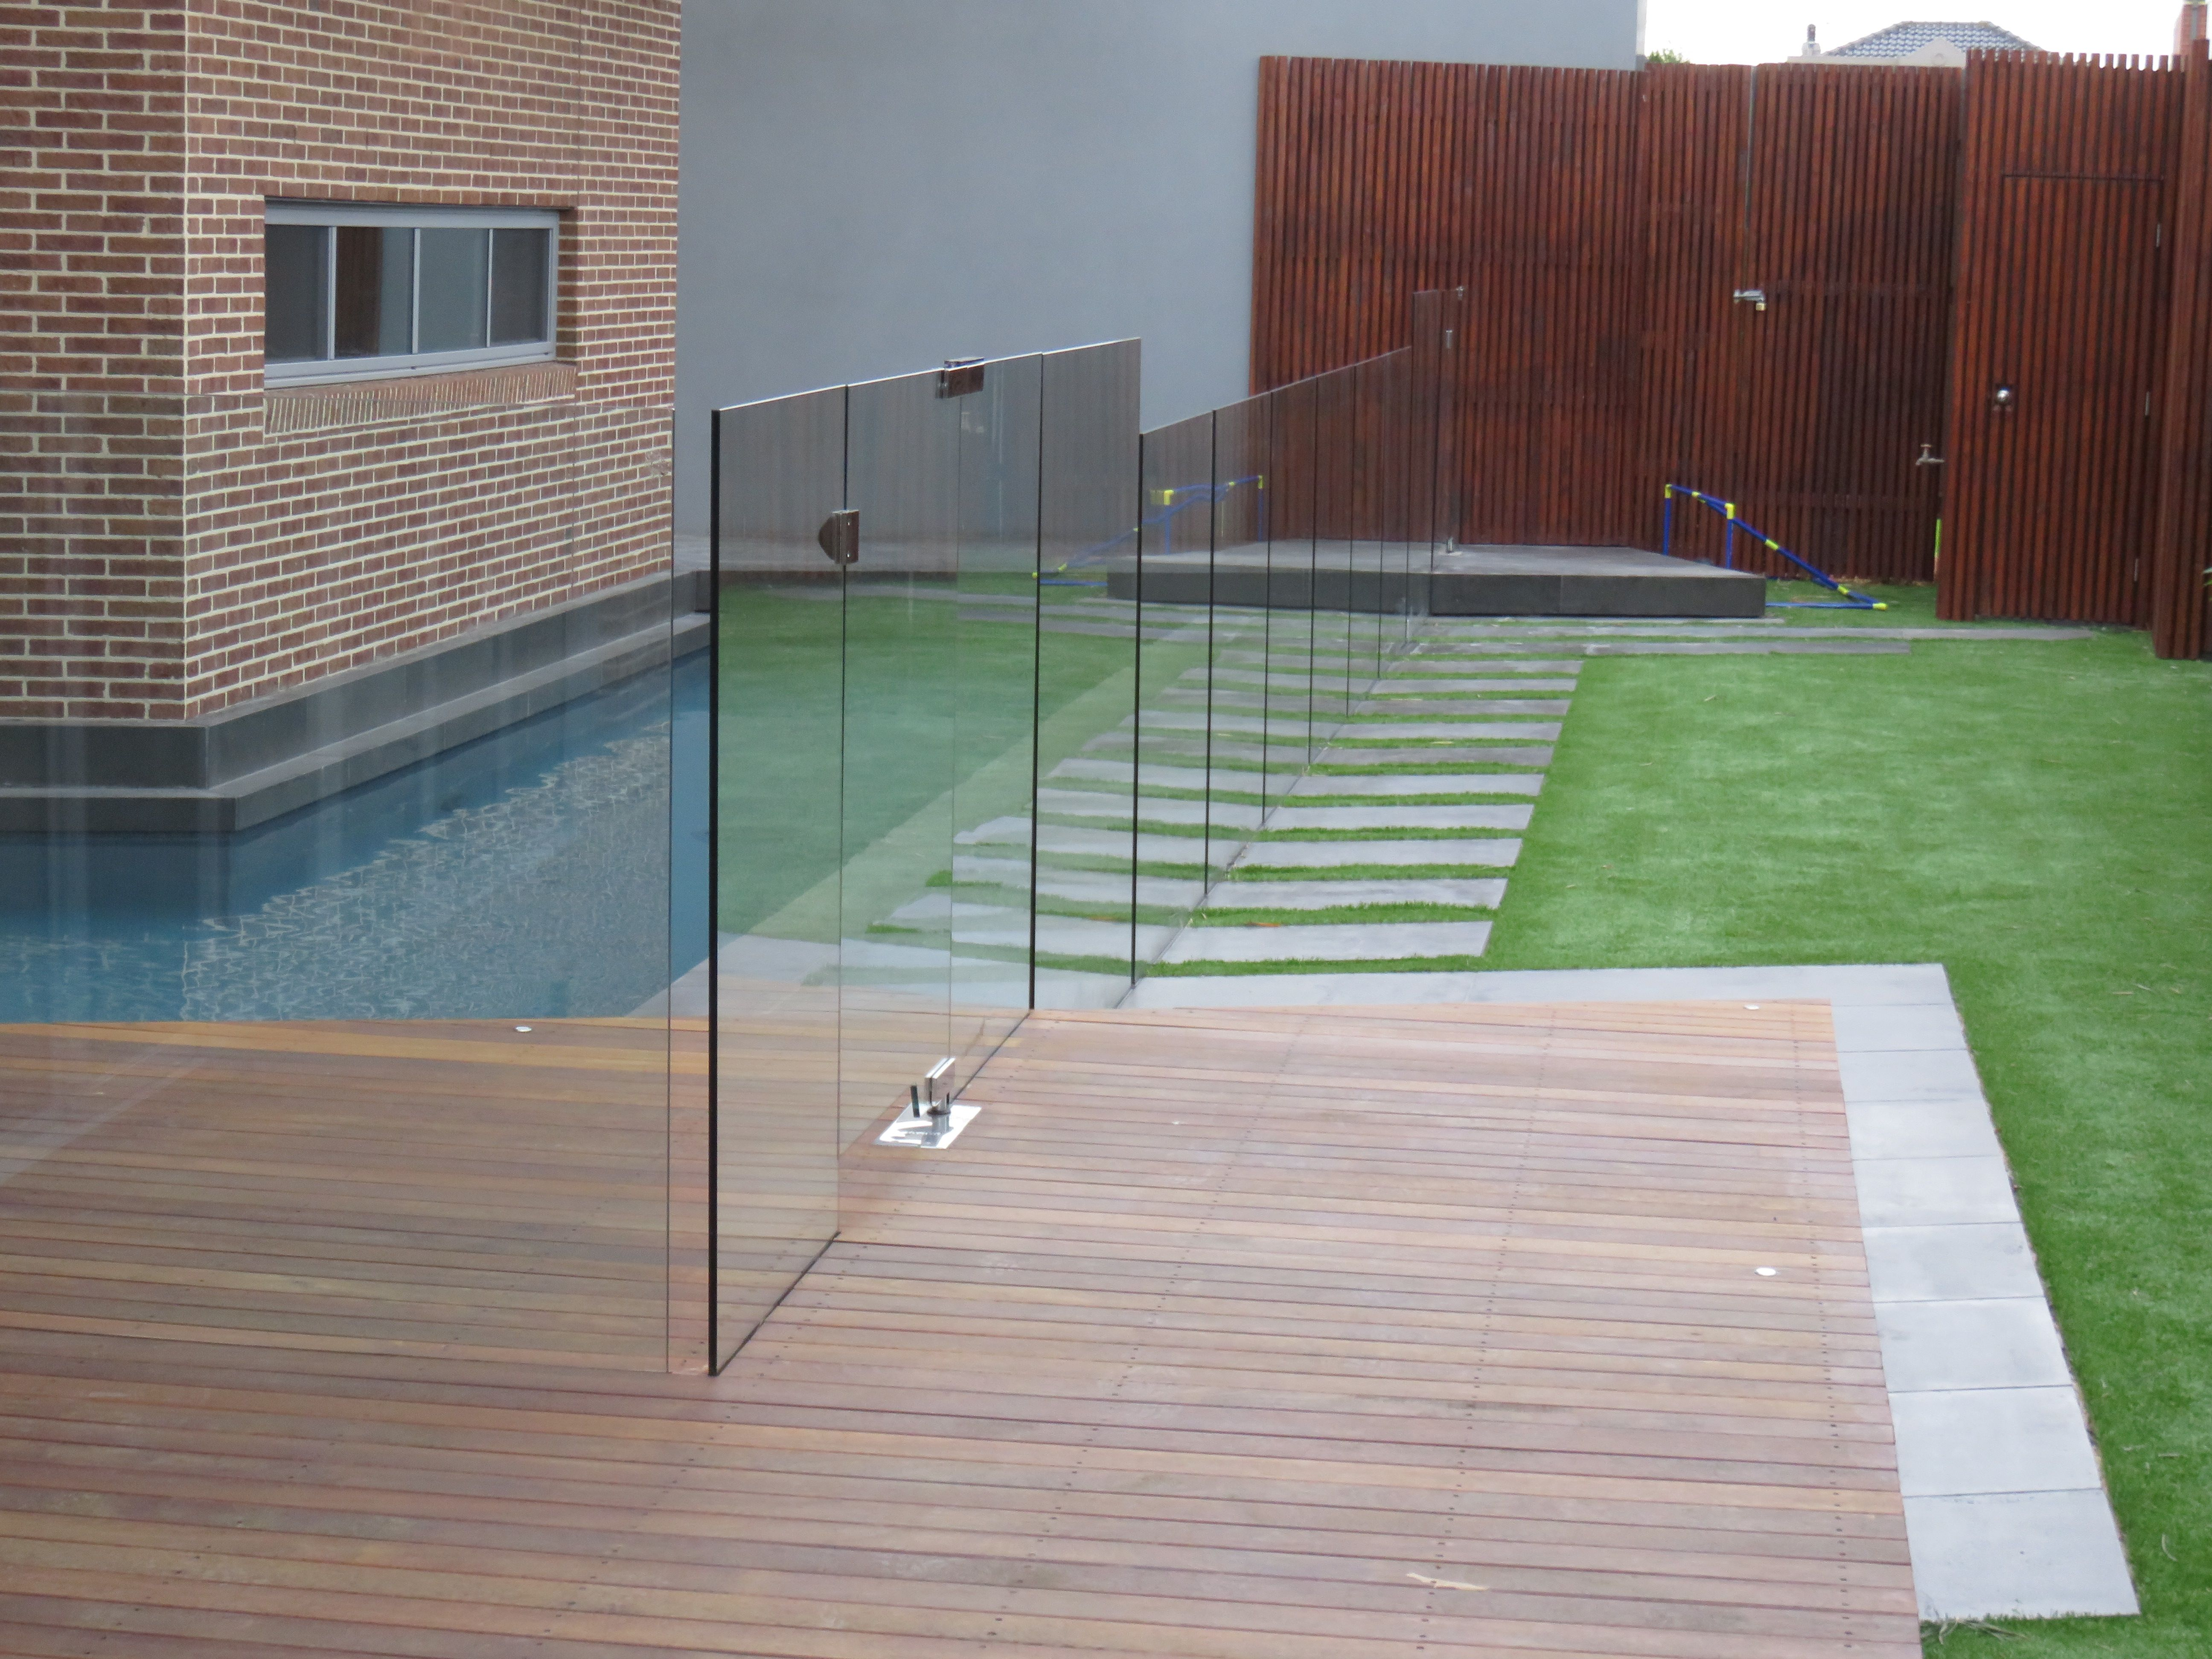 Glass Pool Fence Merbau Deck And Artificial Turf Backyard Landscaping Designs Glass Pool Fencing Landscape Projects